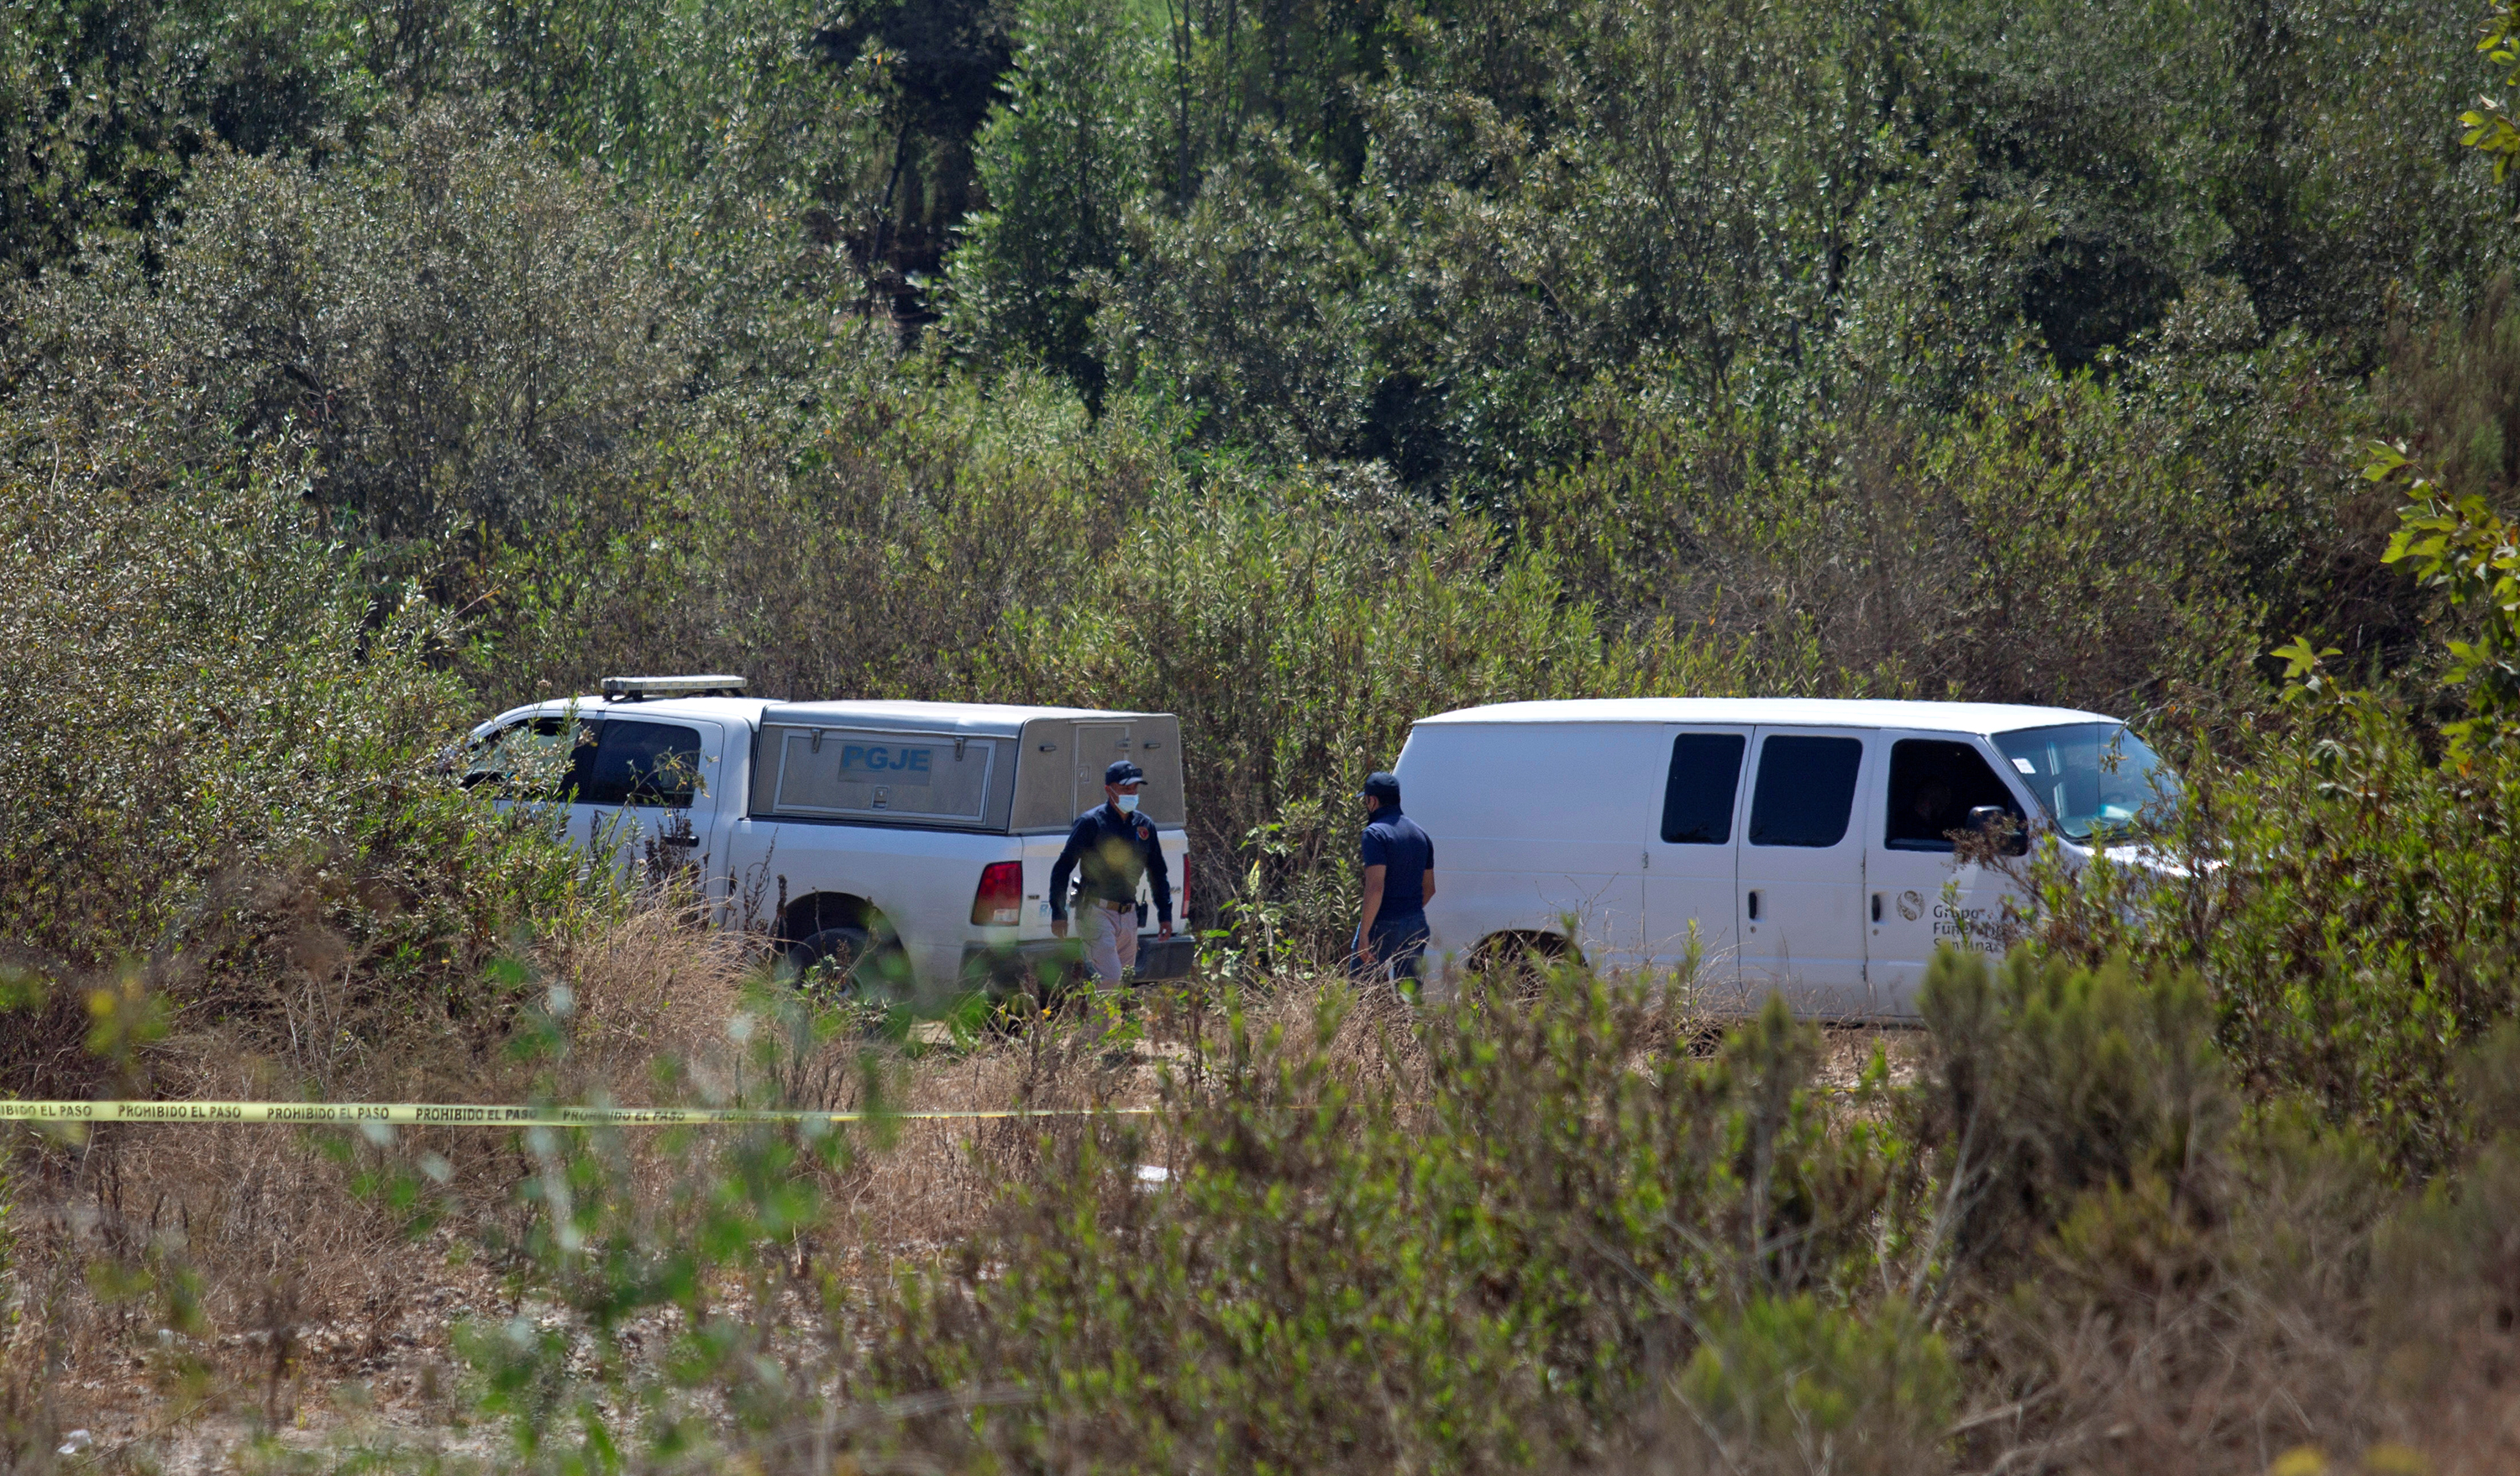 Forensic technicians work at the scene where two young American children were found dead, in Rosarito, Baja California state, Mexico August 9, 2021. Picture taken August 9, 2021. REUTERS/Stringer NO RESALES. NO ARCHIVES